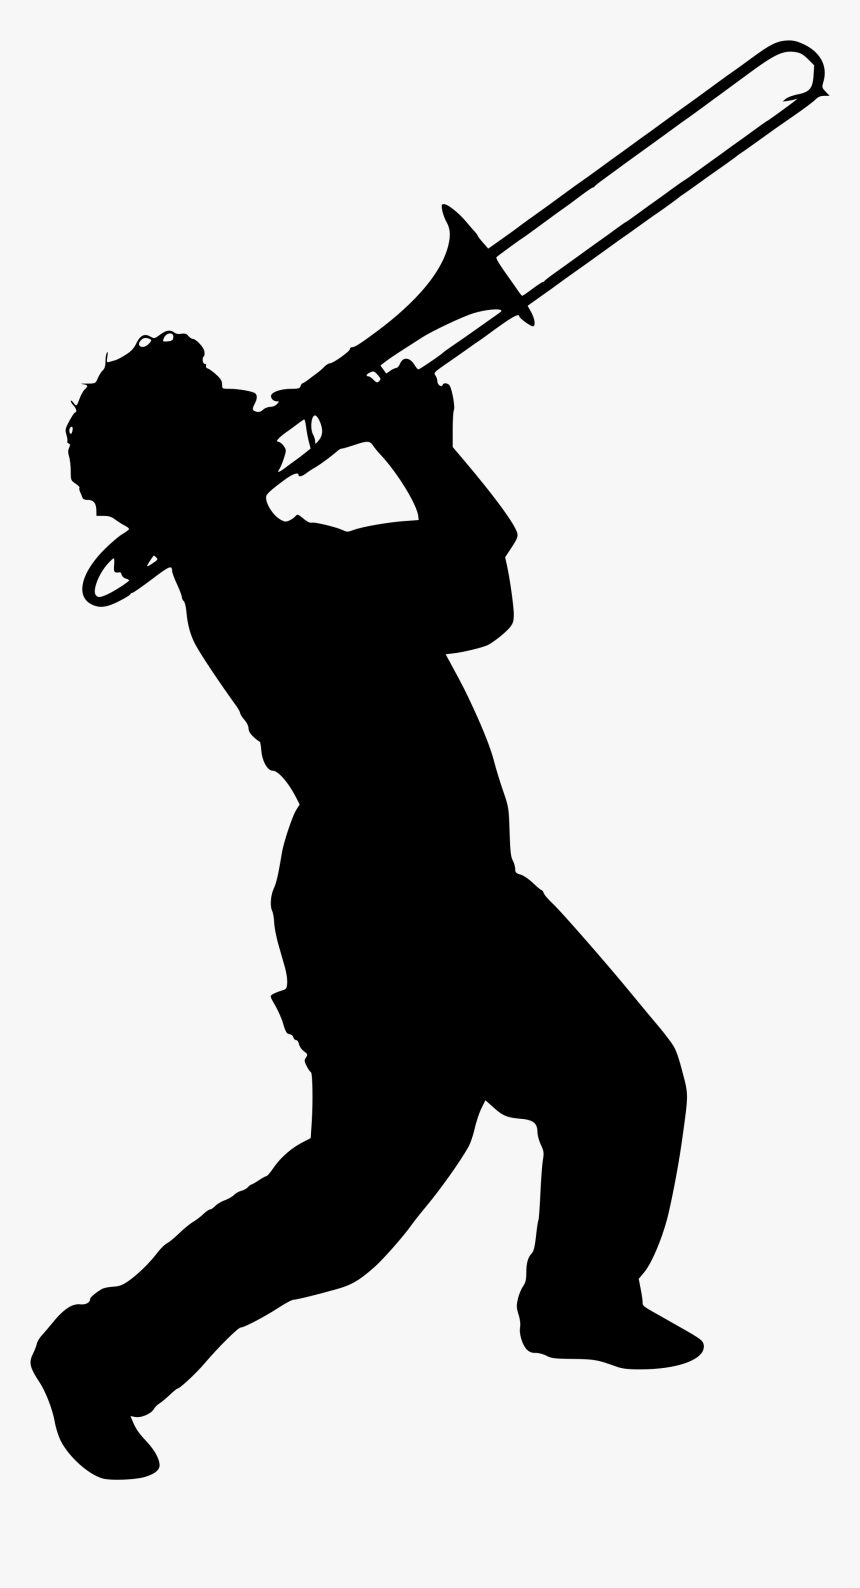 Transparent Trombone Png - Band Silhouette, Png Download, Free Download